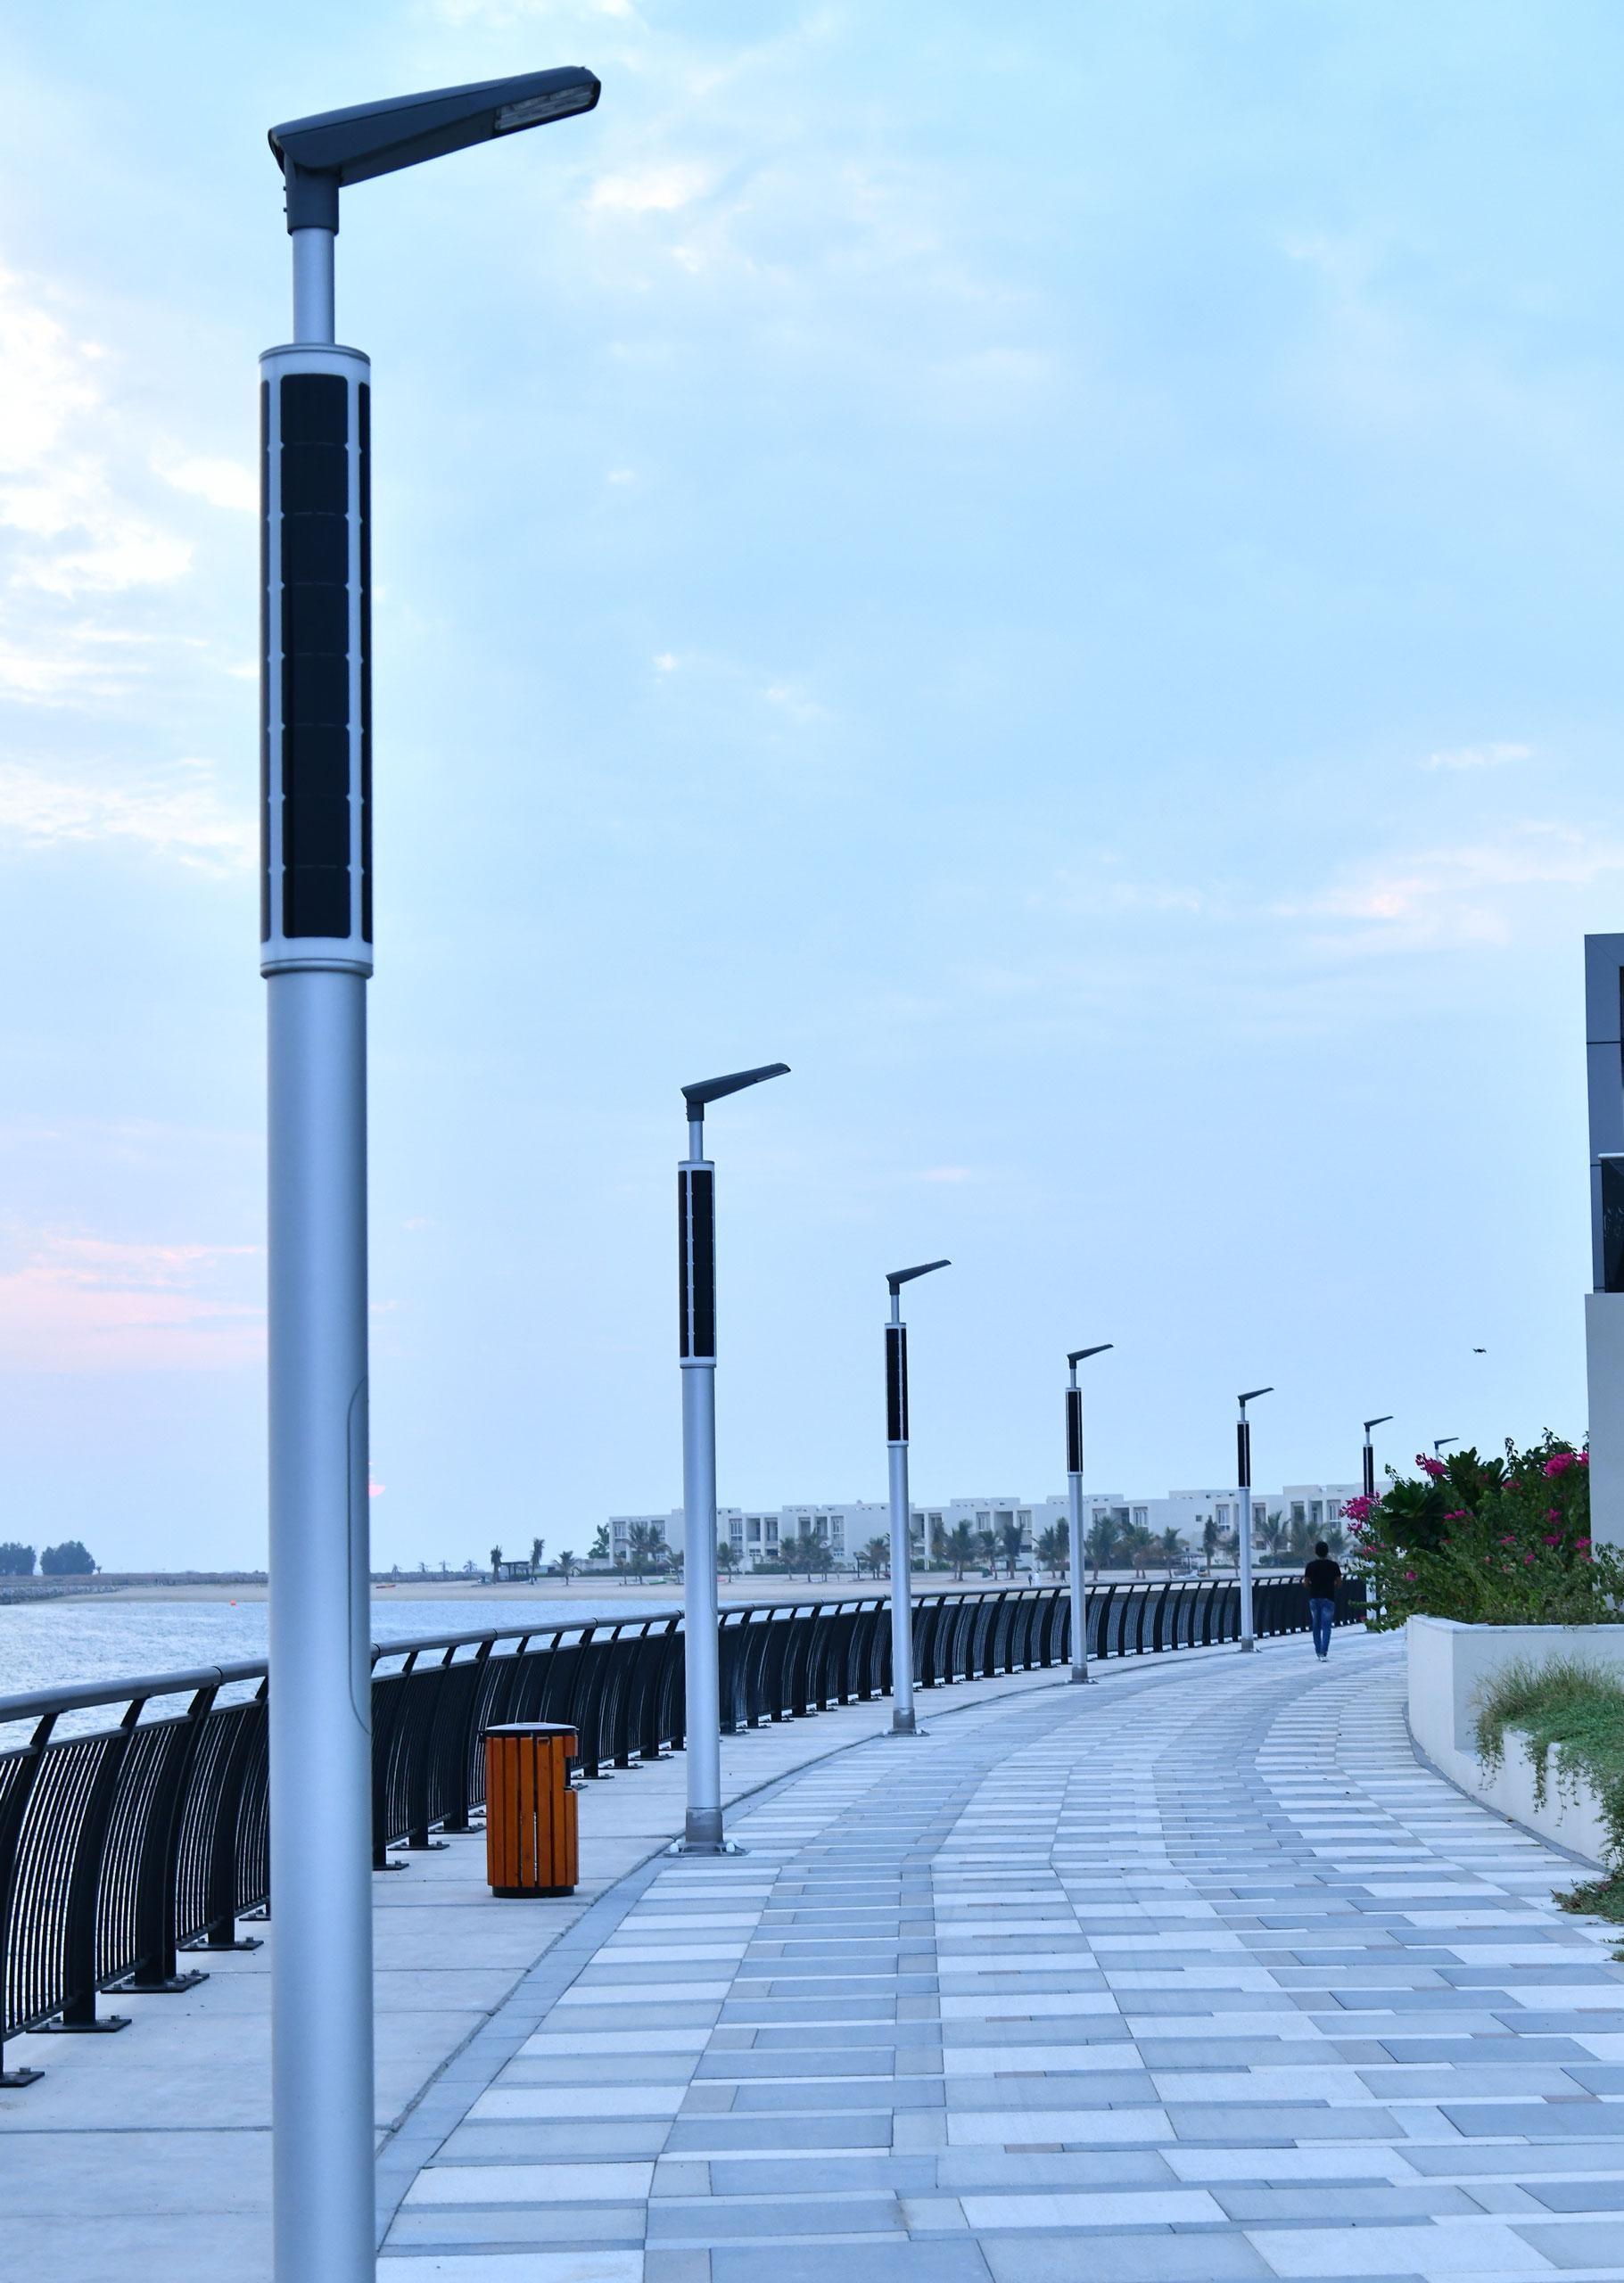 PV powered lighting at boulevard pathway